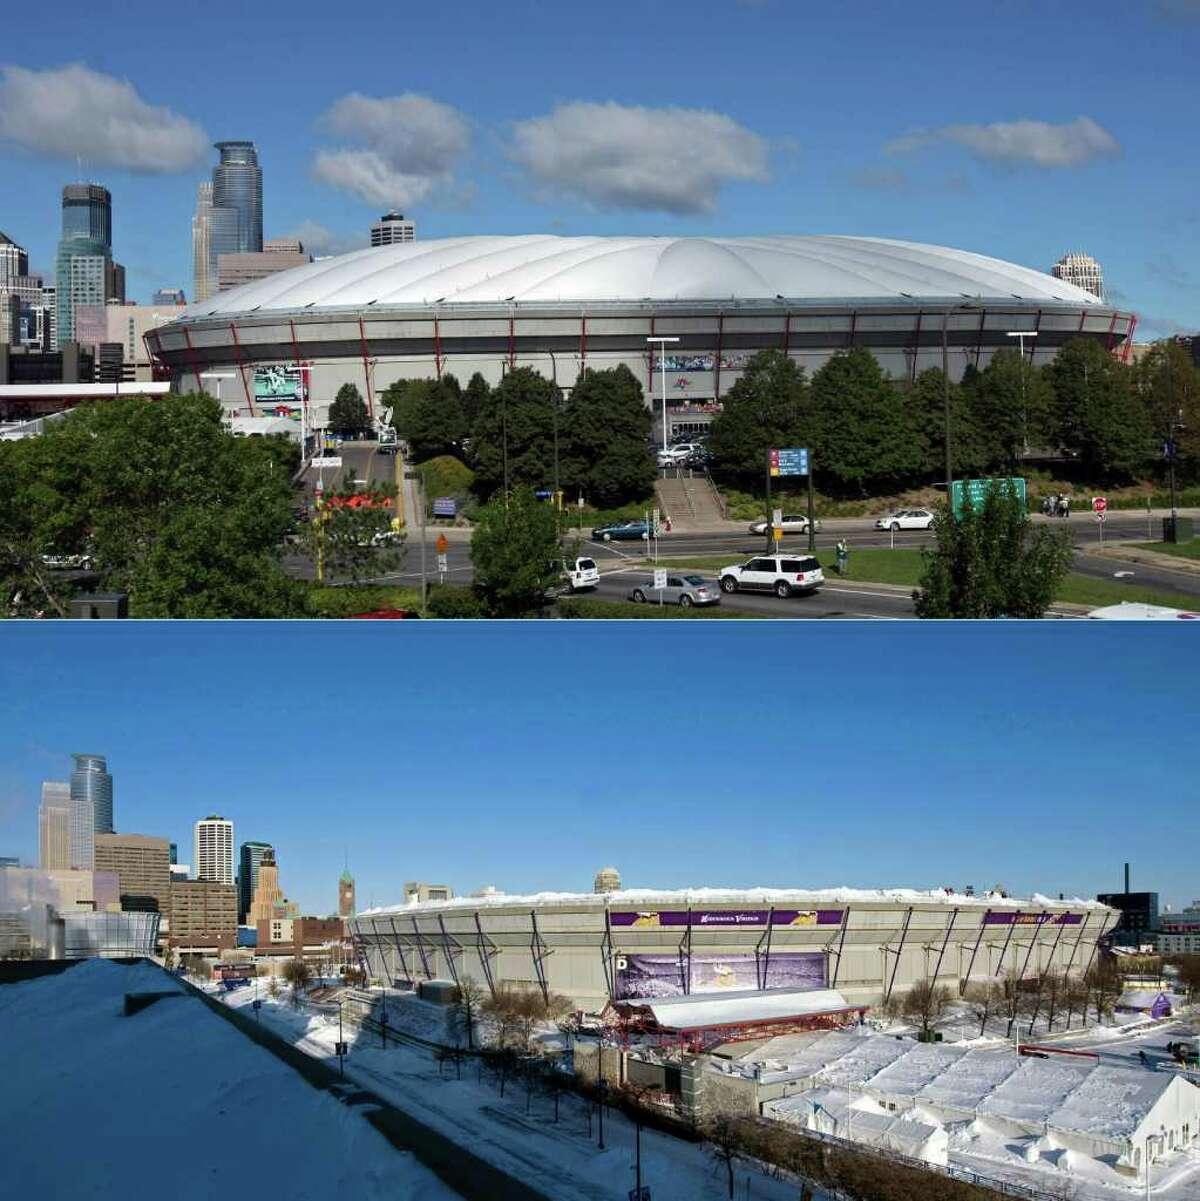 MINNEAPOLIS, MN - DECEMBER 12: This photo composite shows Hubert H. Humphrey Metrodome, Mall of America Stadium before (above) and after it's inflatable roof collapsed under the weight of snow and during a storm Sunday morning December 12, 2010 in Minneapolis, Minnesota. A blizzard dumped more than 20 inches of snow in parts of the Midwest forcing the NFL football game between the New York Giants and the Minnesota Vikings to be postponed till Monday and will be played in Detroit's Ford Field. There were no injuries reported from the collapse of the dome. (Photos by Doug Pensinger (above) and Tom Dahlin/Getty Images)